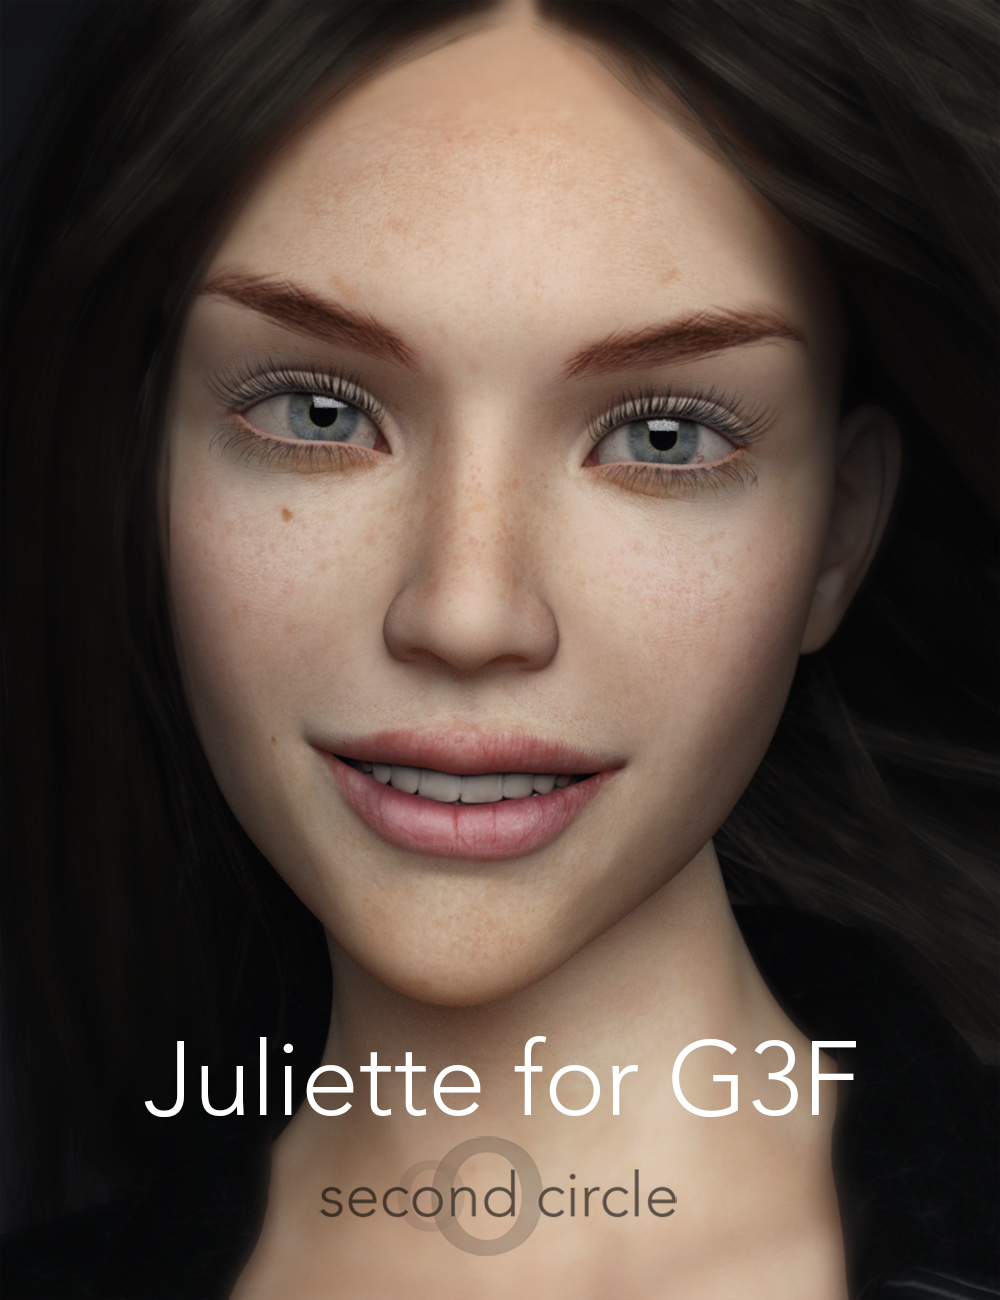 Juliette for Genesis 3 Female by secondcircle